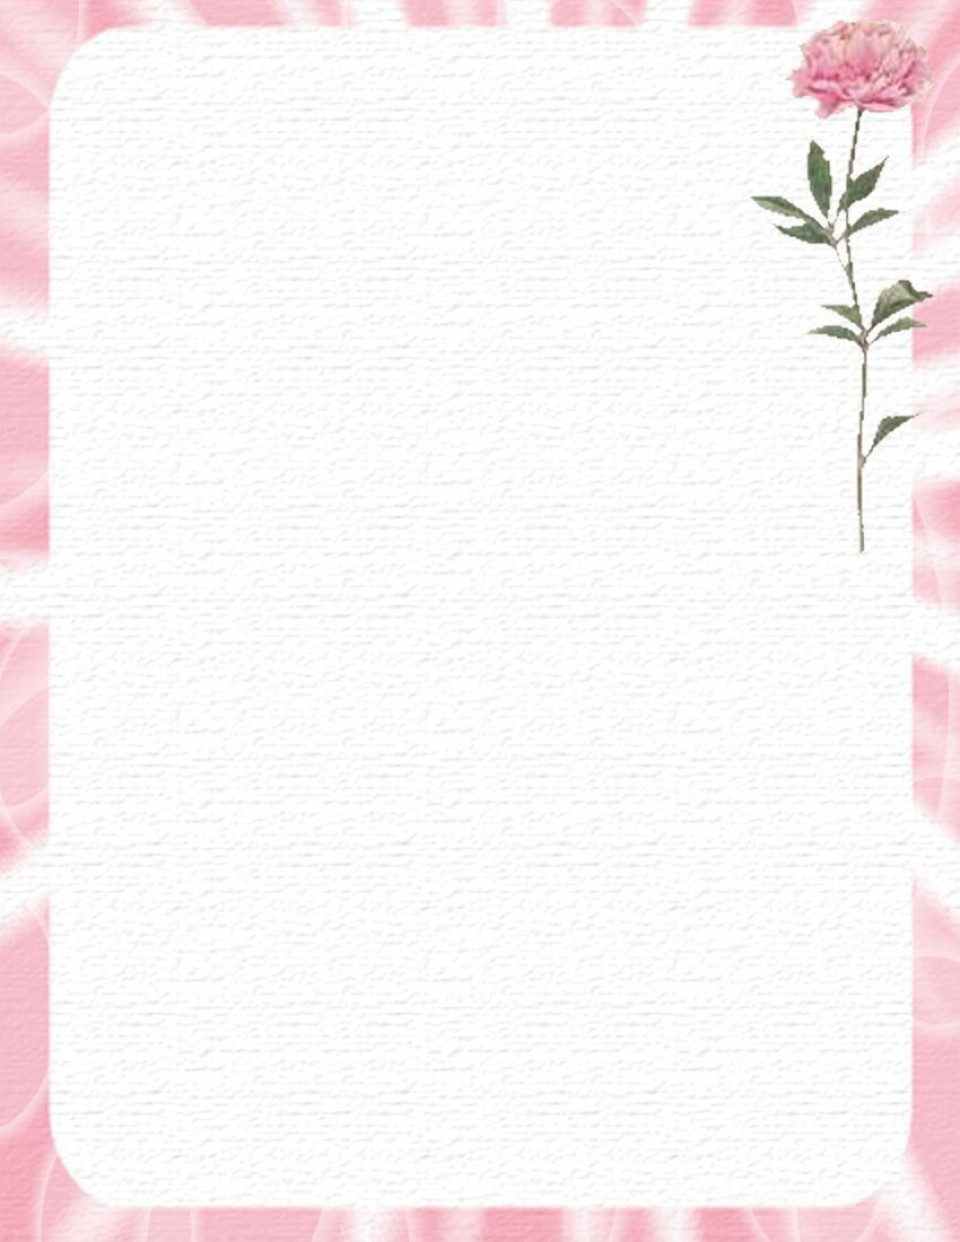 005 Outstanding Free Printable Stationery Paper Template High Def 960